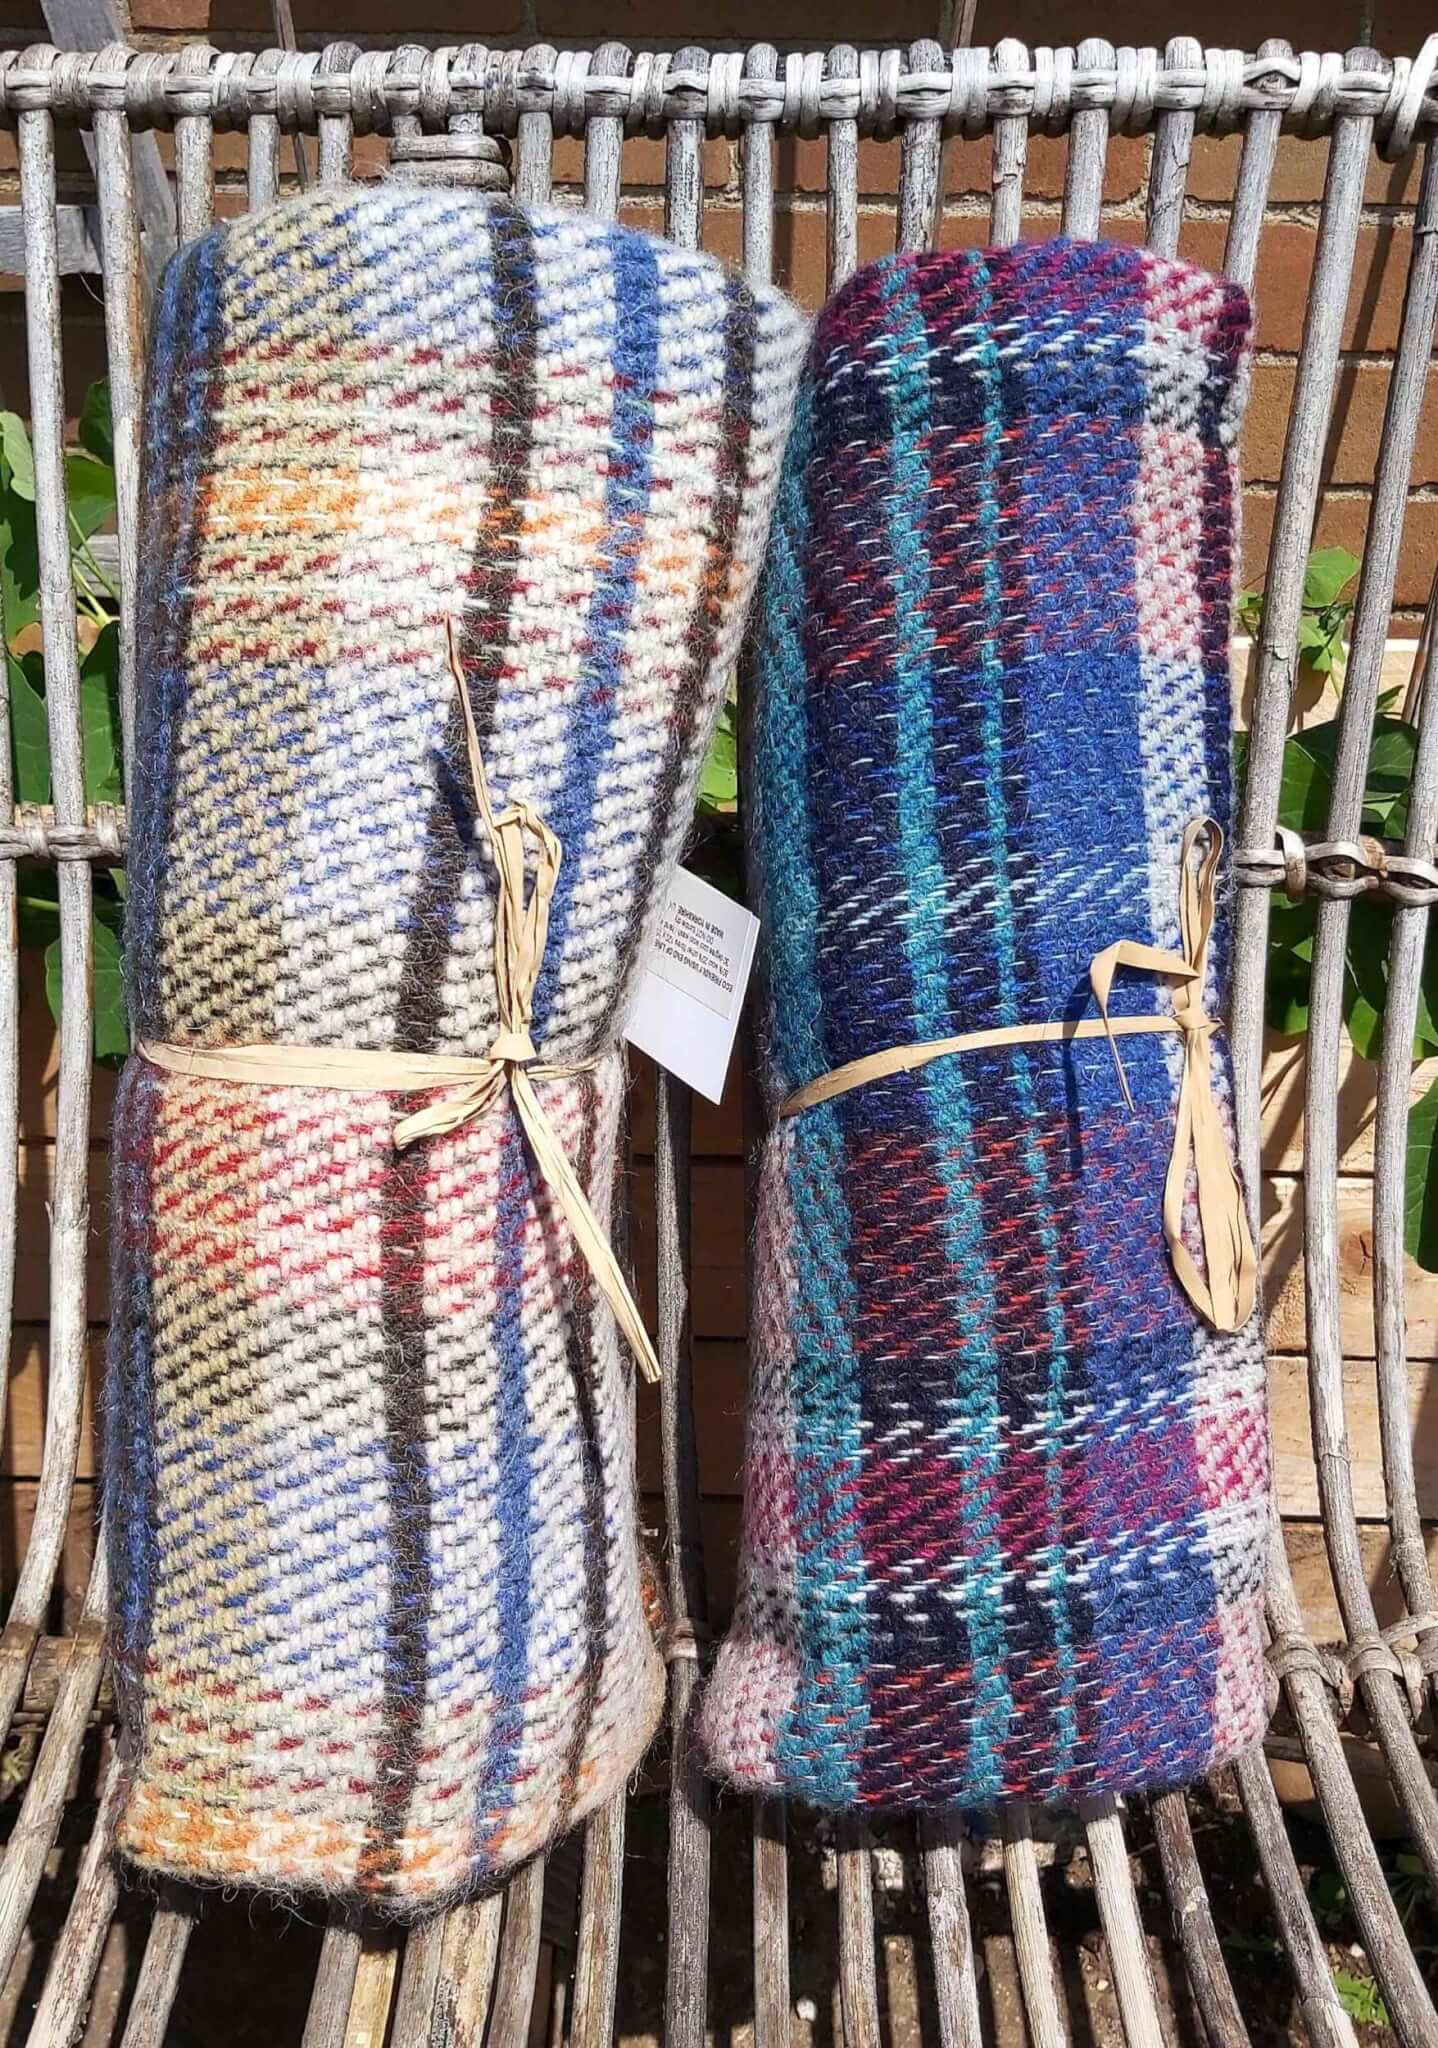 recycled picnic rugs